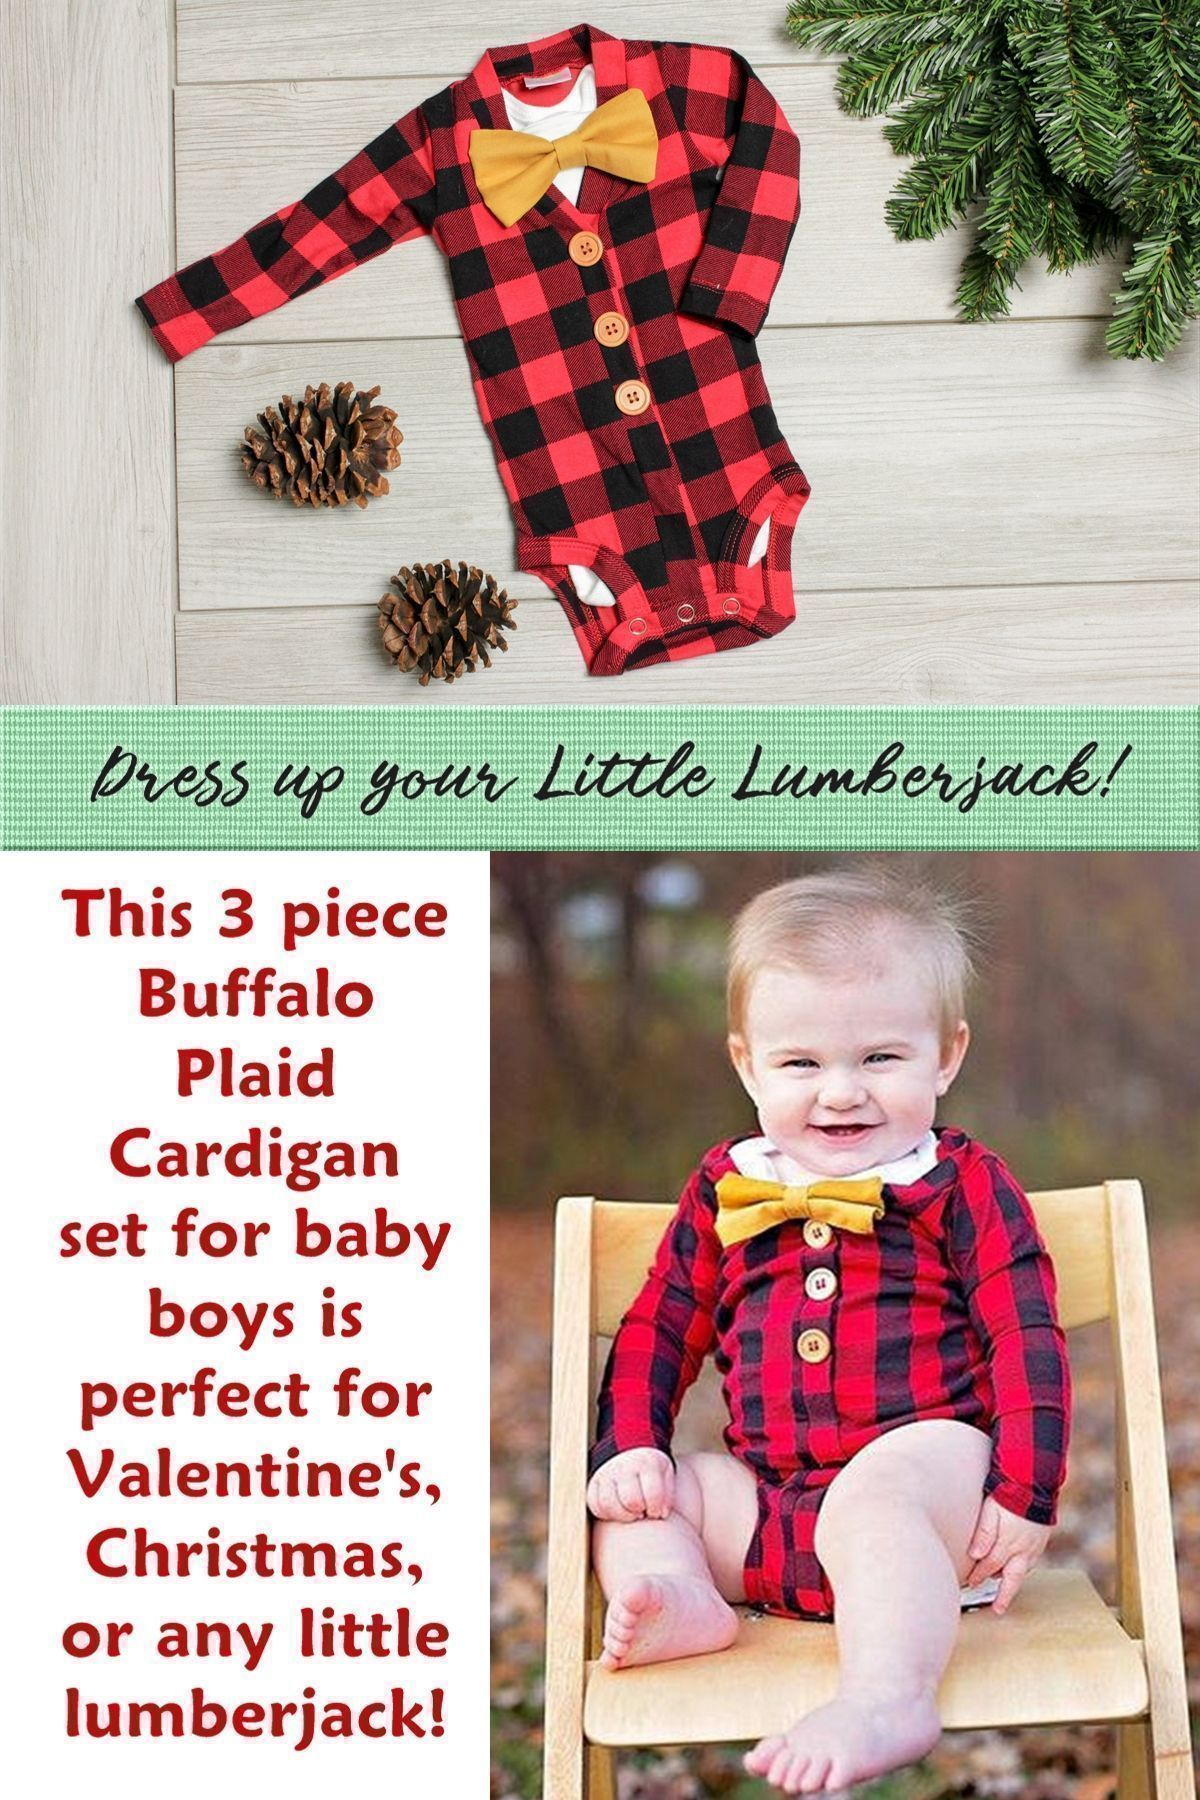 Dress up your little lumberjack in this  pc buffalo plaid set